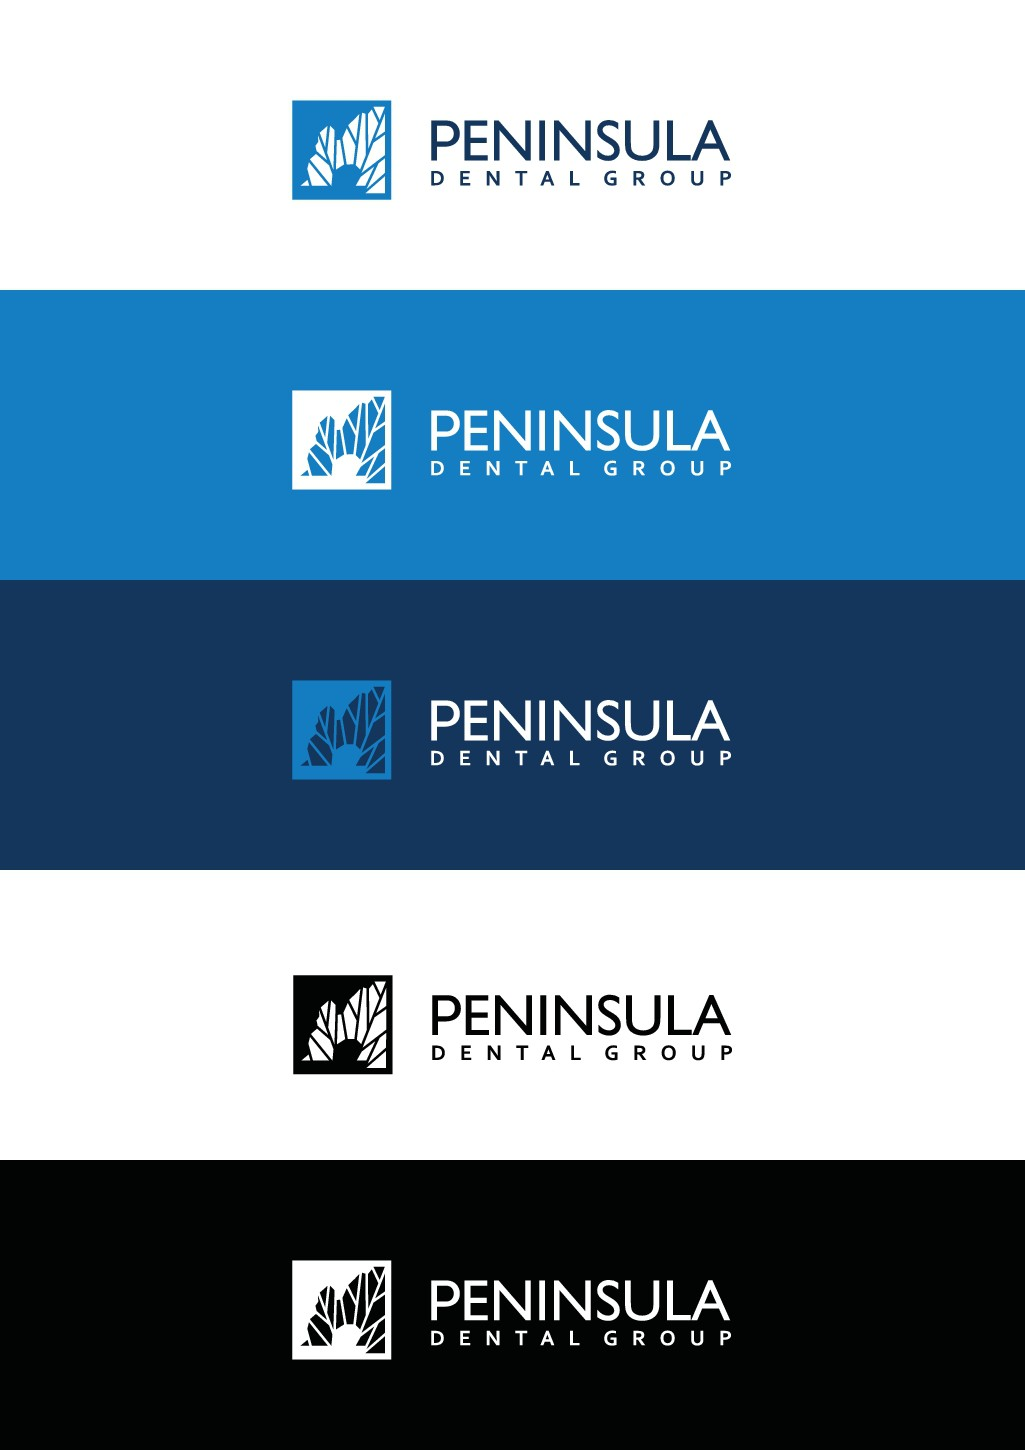 Peninsula Dental Group needs your creativity